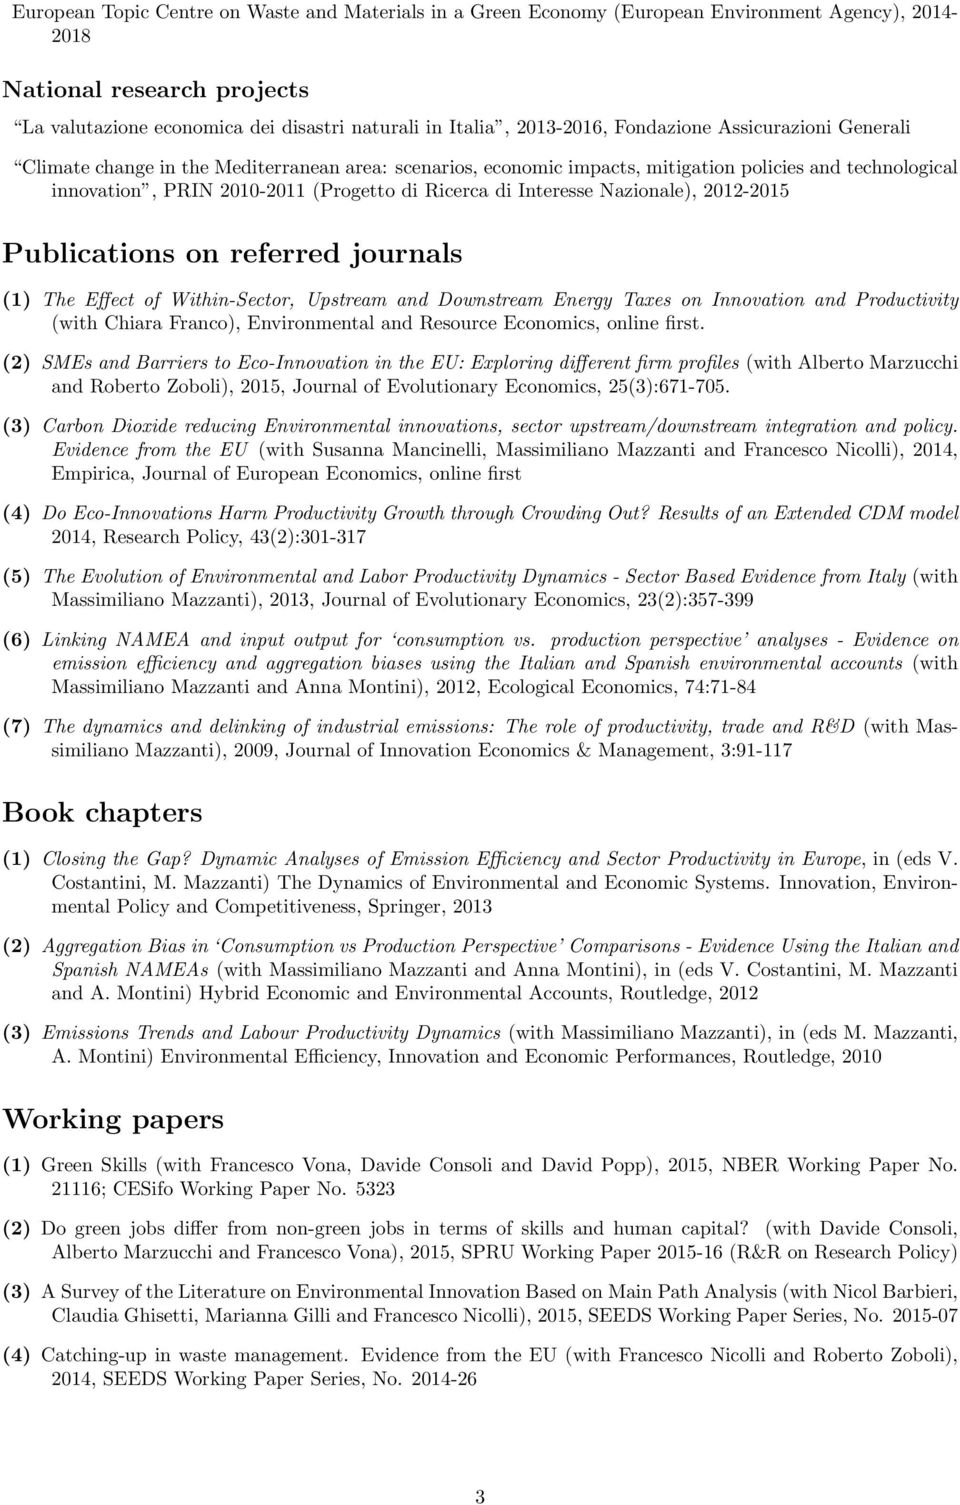 Ricerca di Interesse Nazionale), 2012-2015 Publications on referred journals (1) The Effect of Within-Sector, Upstream and Downstream Energy Taxes on Innovation and Productivity (with Chiara Franco),